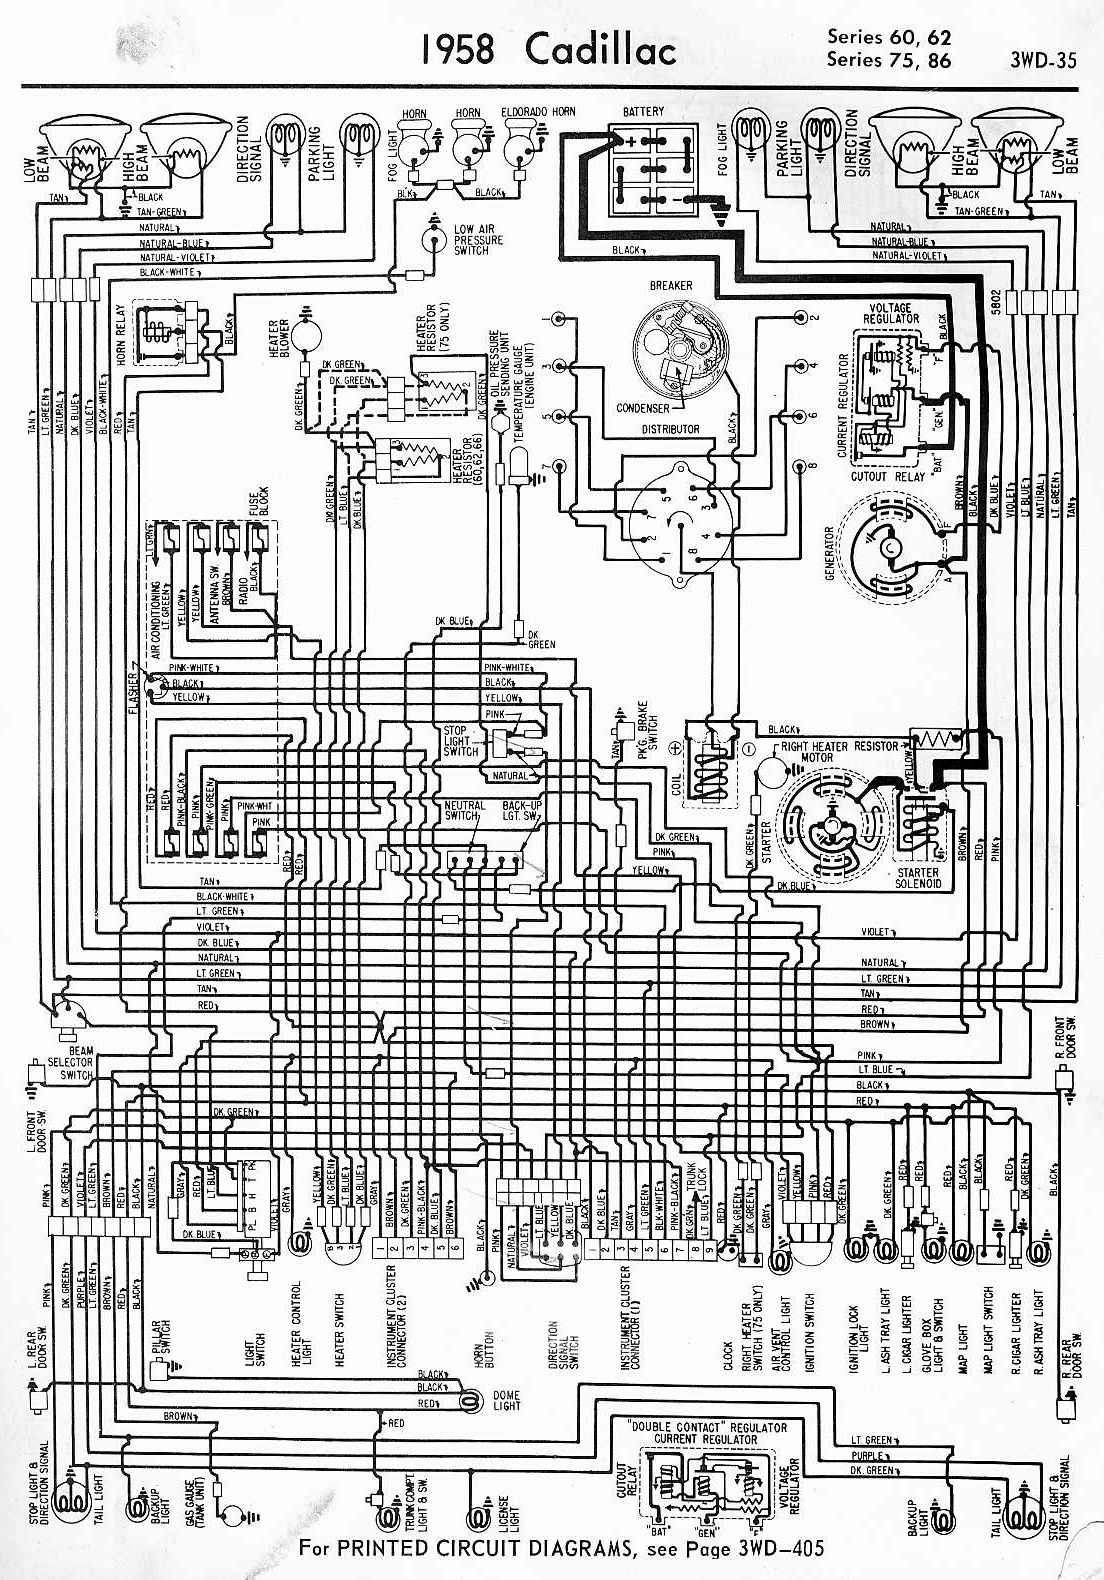 69 cadillac wiring diagram wiring diagram blog 1969 cadillac wiring diagram [ 1104 x 1580 Pixel ]